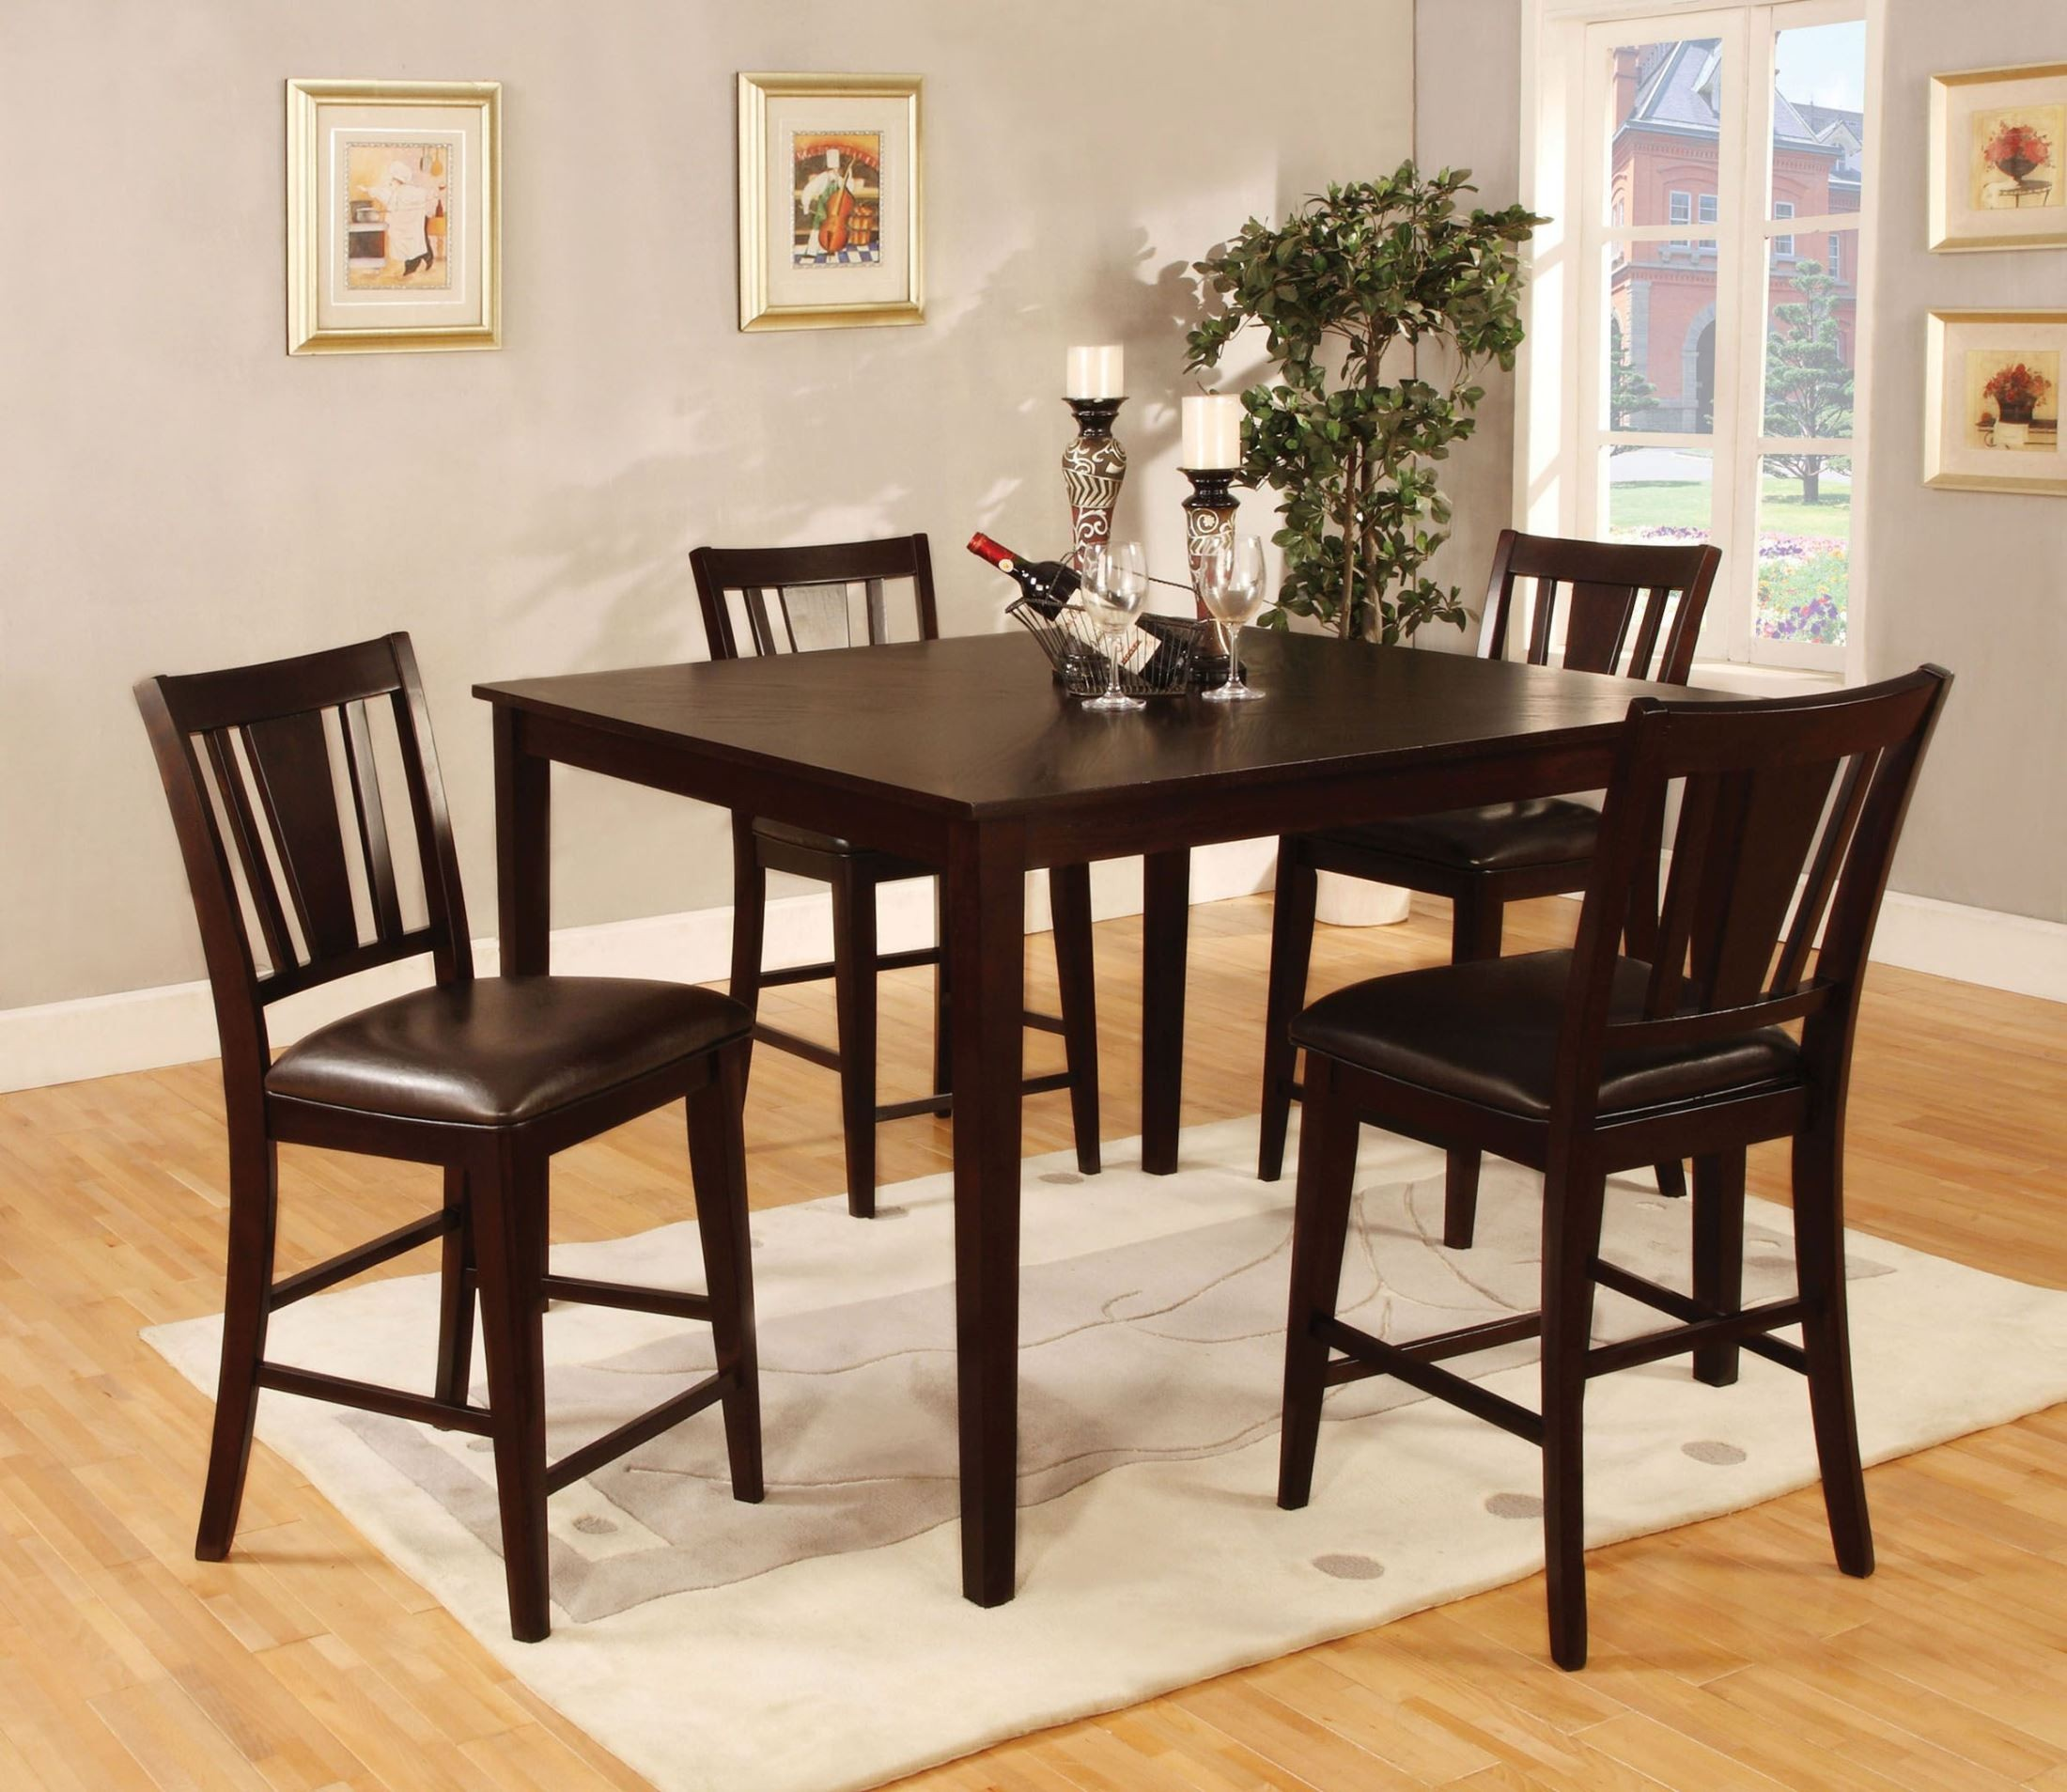 Bridgette II 5 Piece Square Counter Height Table Set from ...